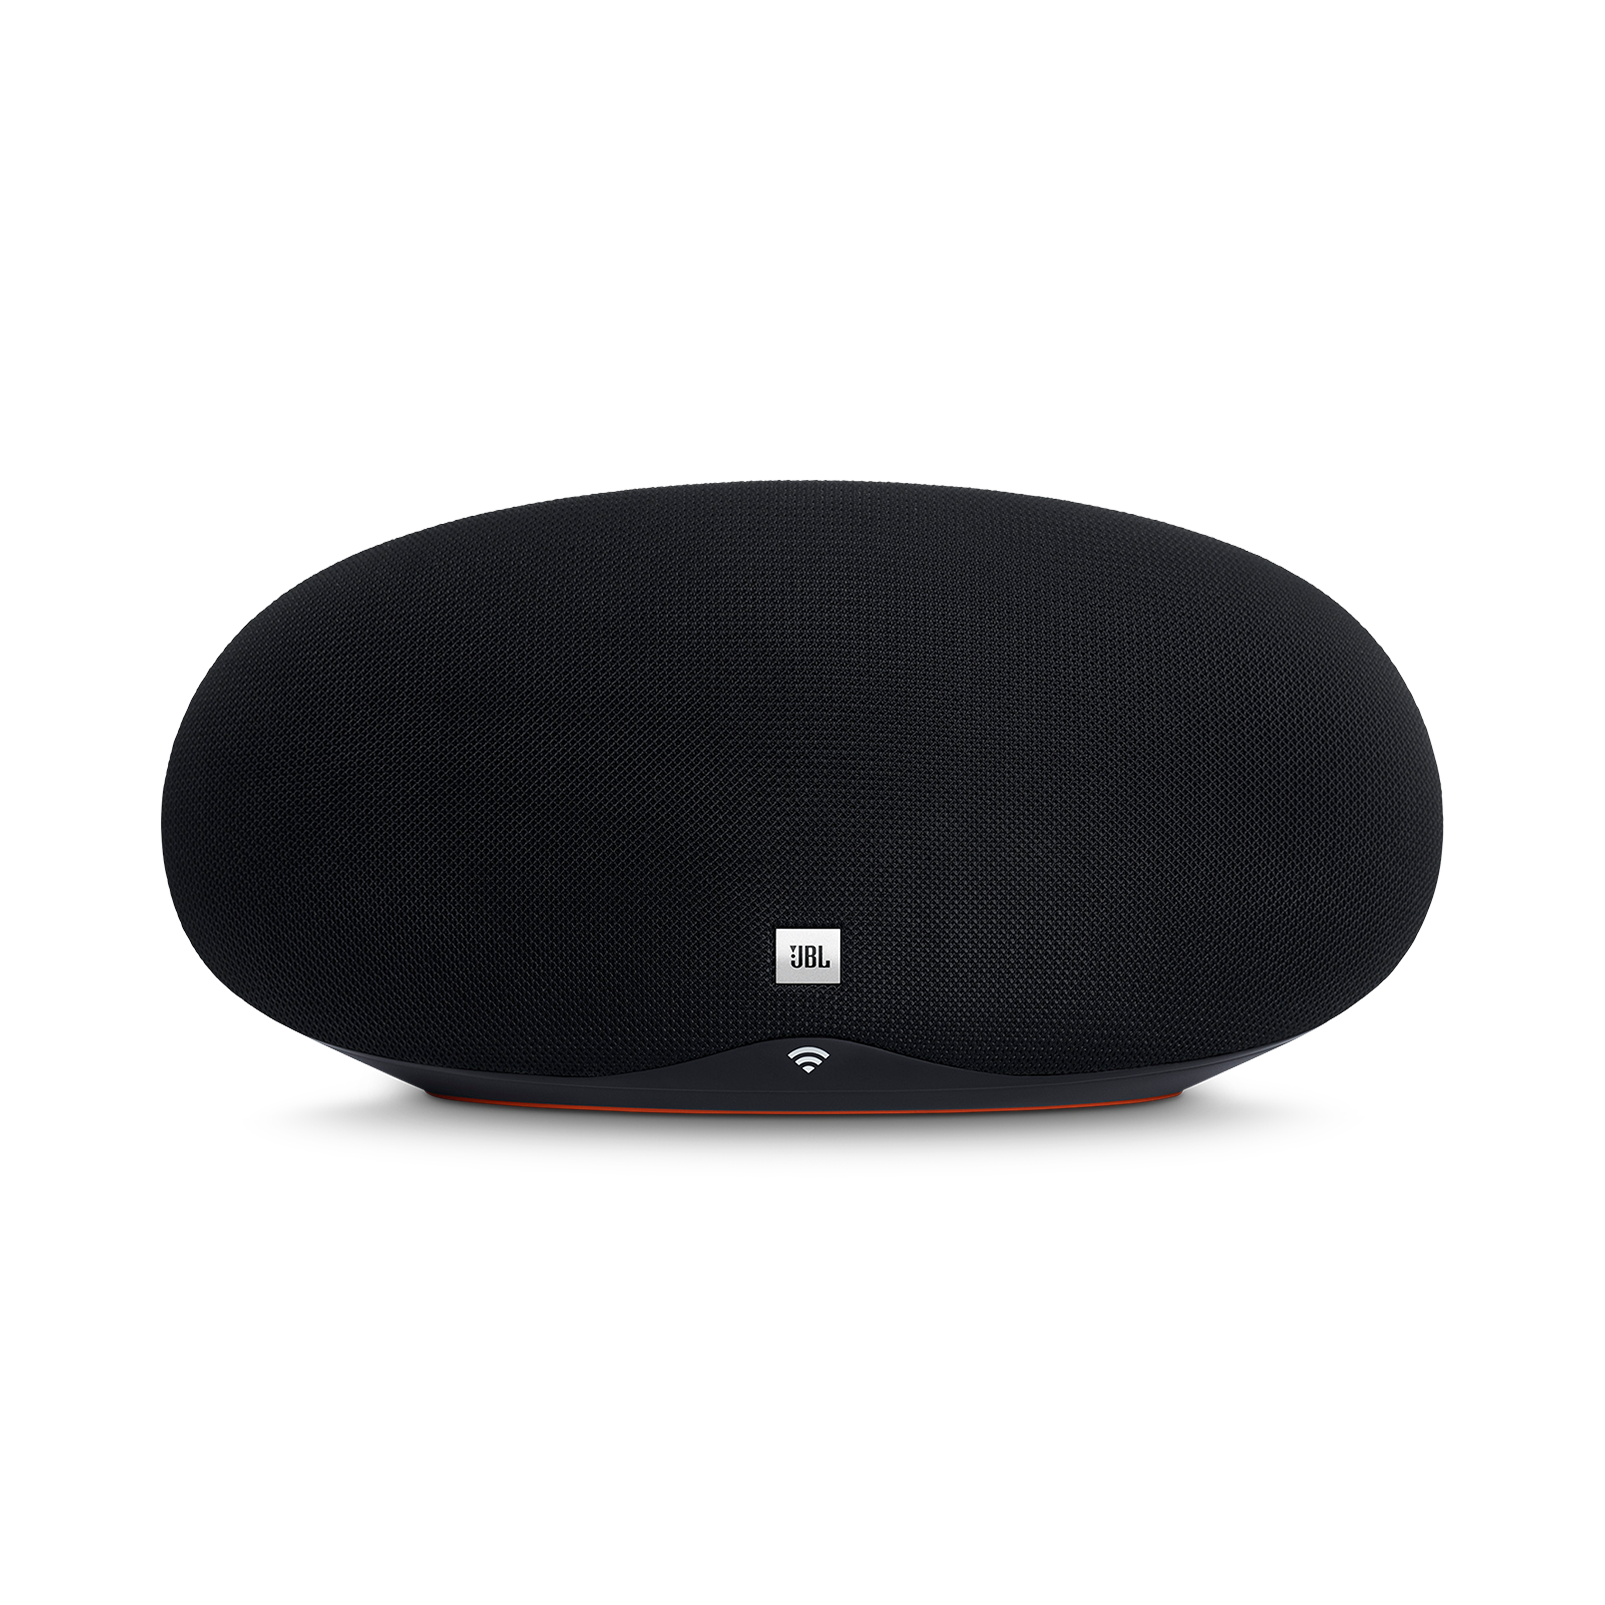 JBL Playlist - Black - Wireless speaker with Chromecast built-in - Front